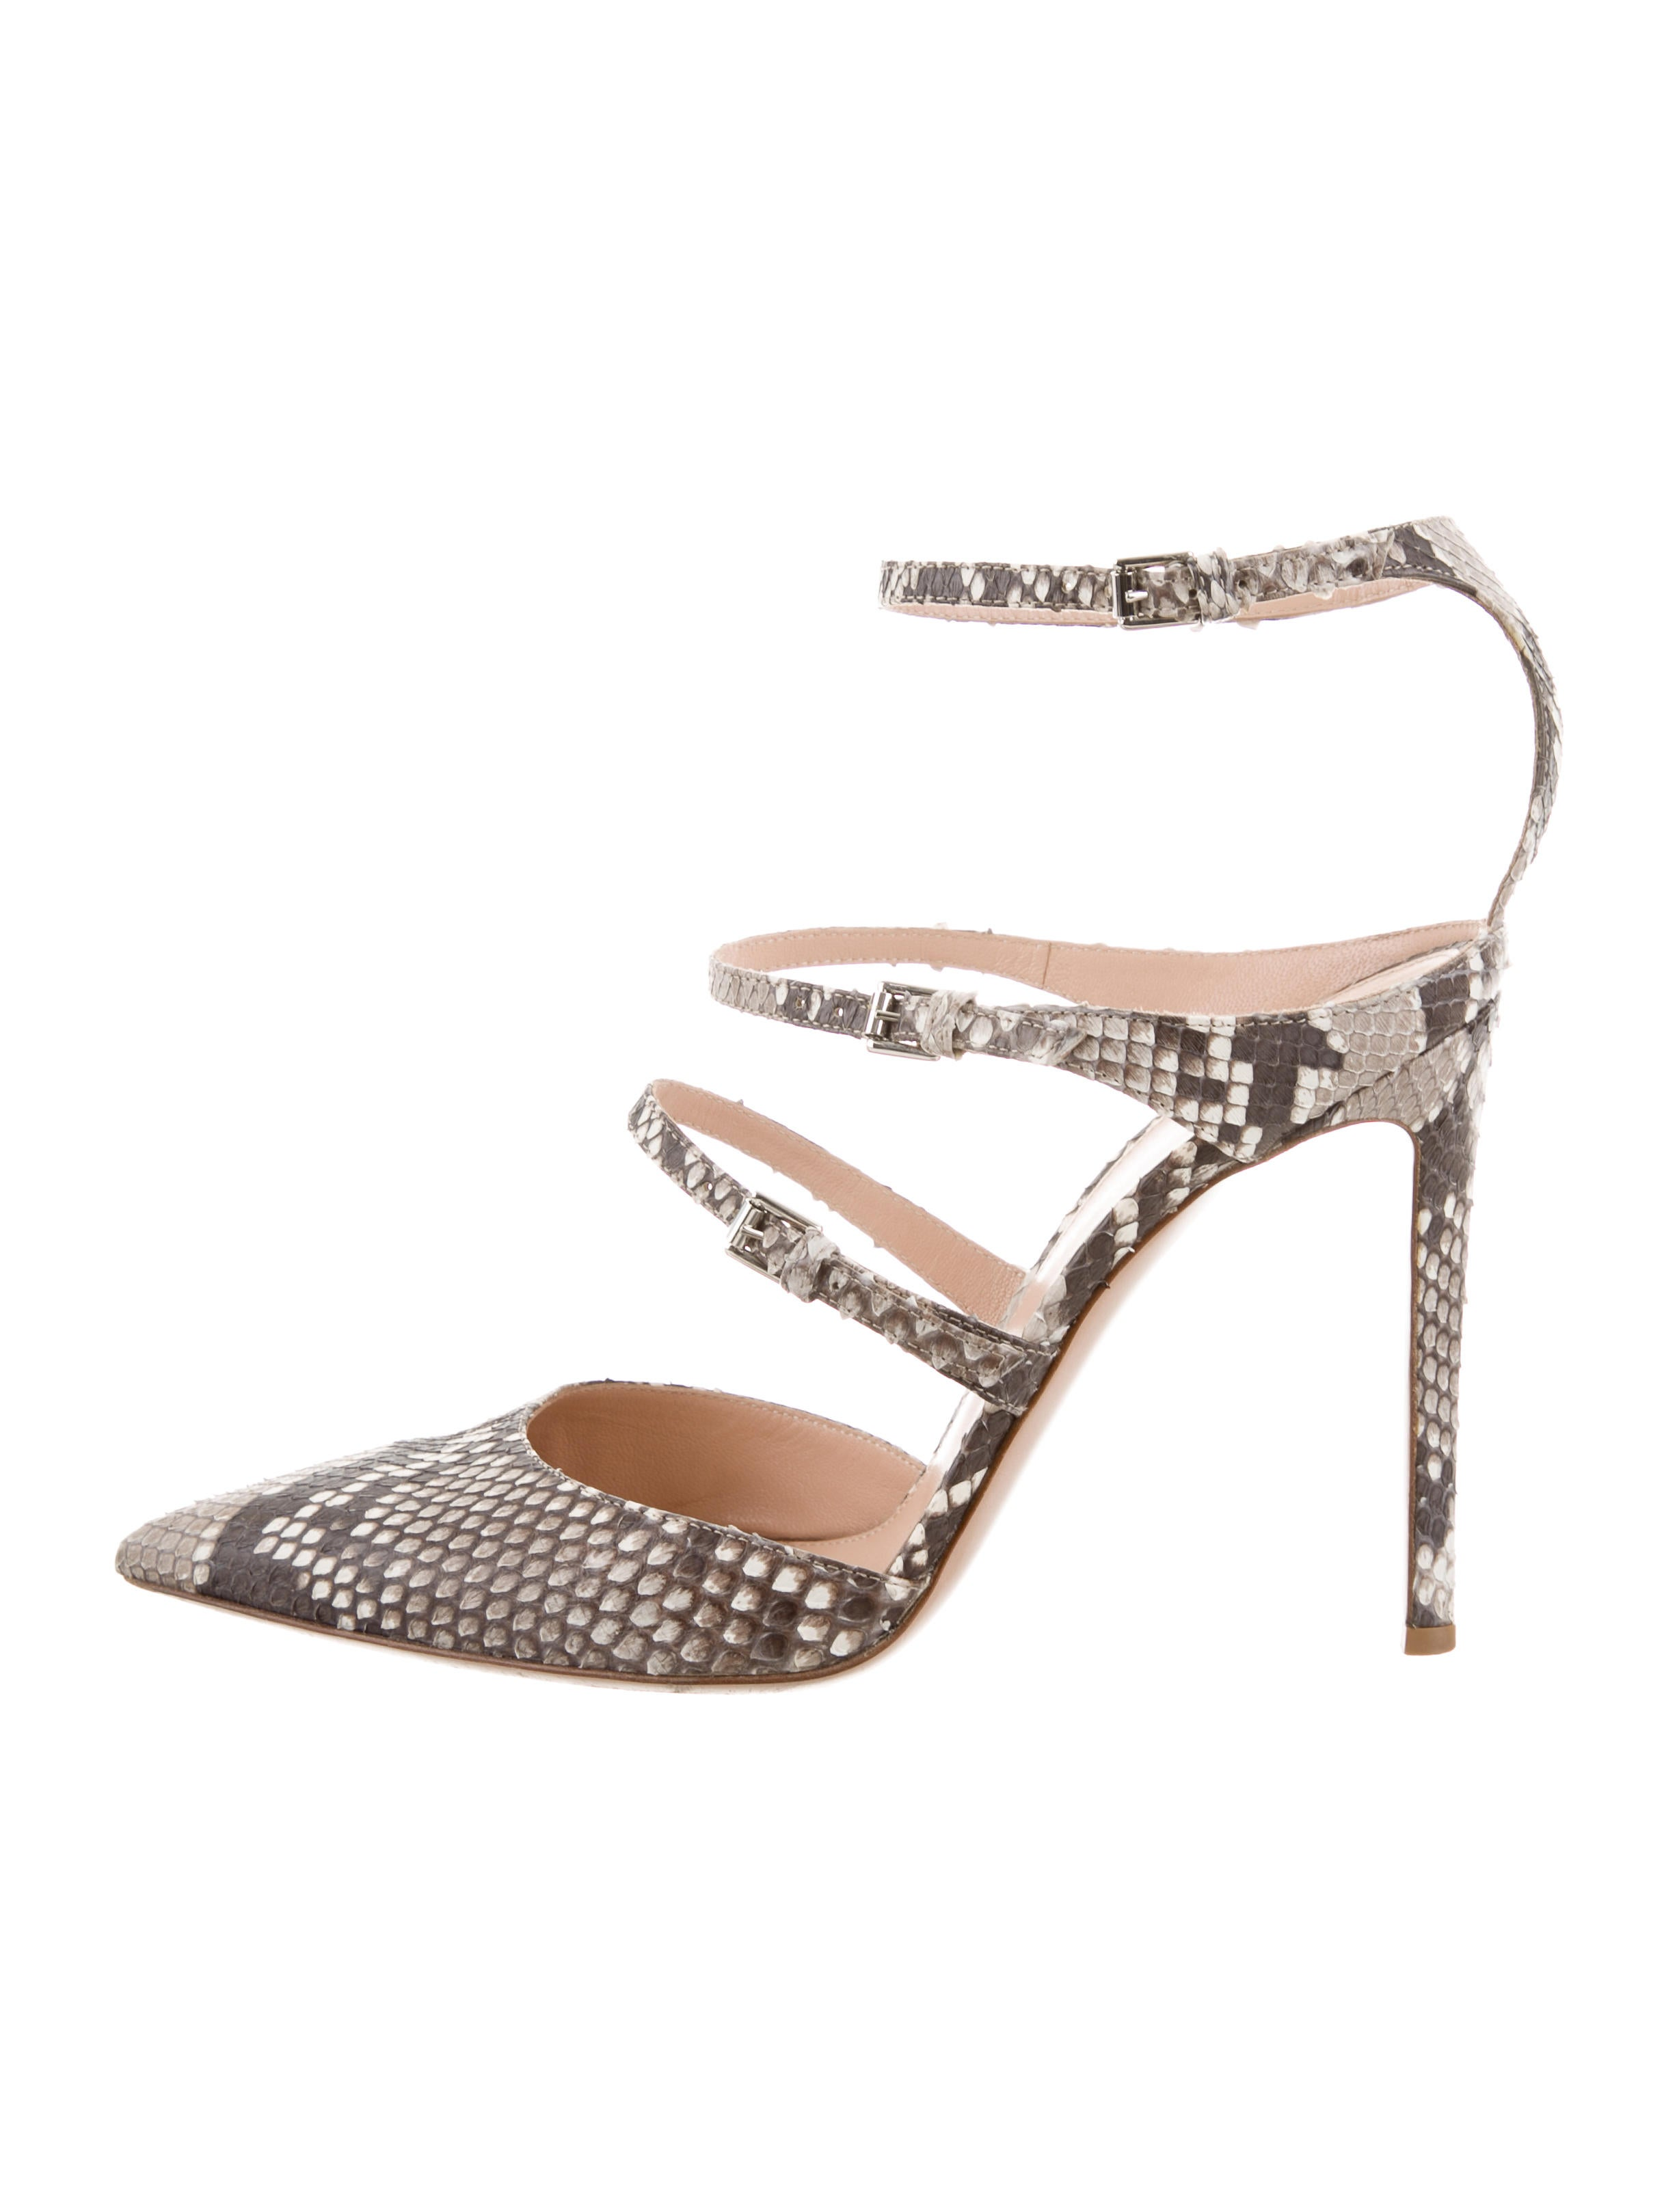 Gianvito Rossi Snakeskin Peep-Toe Pumps outlet best prices cheap from china view for sale limited edition sale online cheap sale clearance jrRZ2